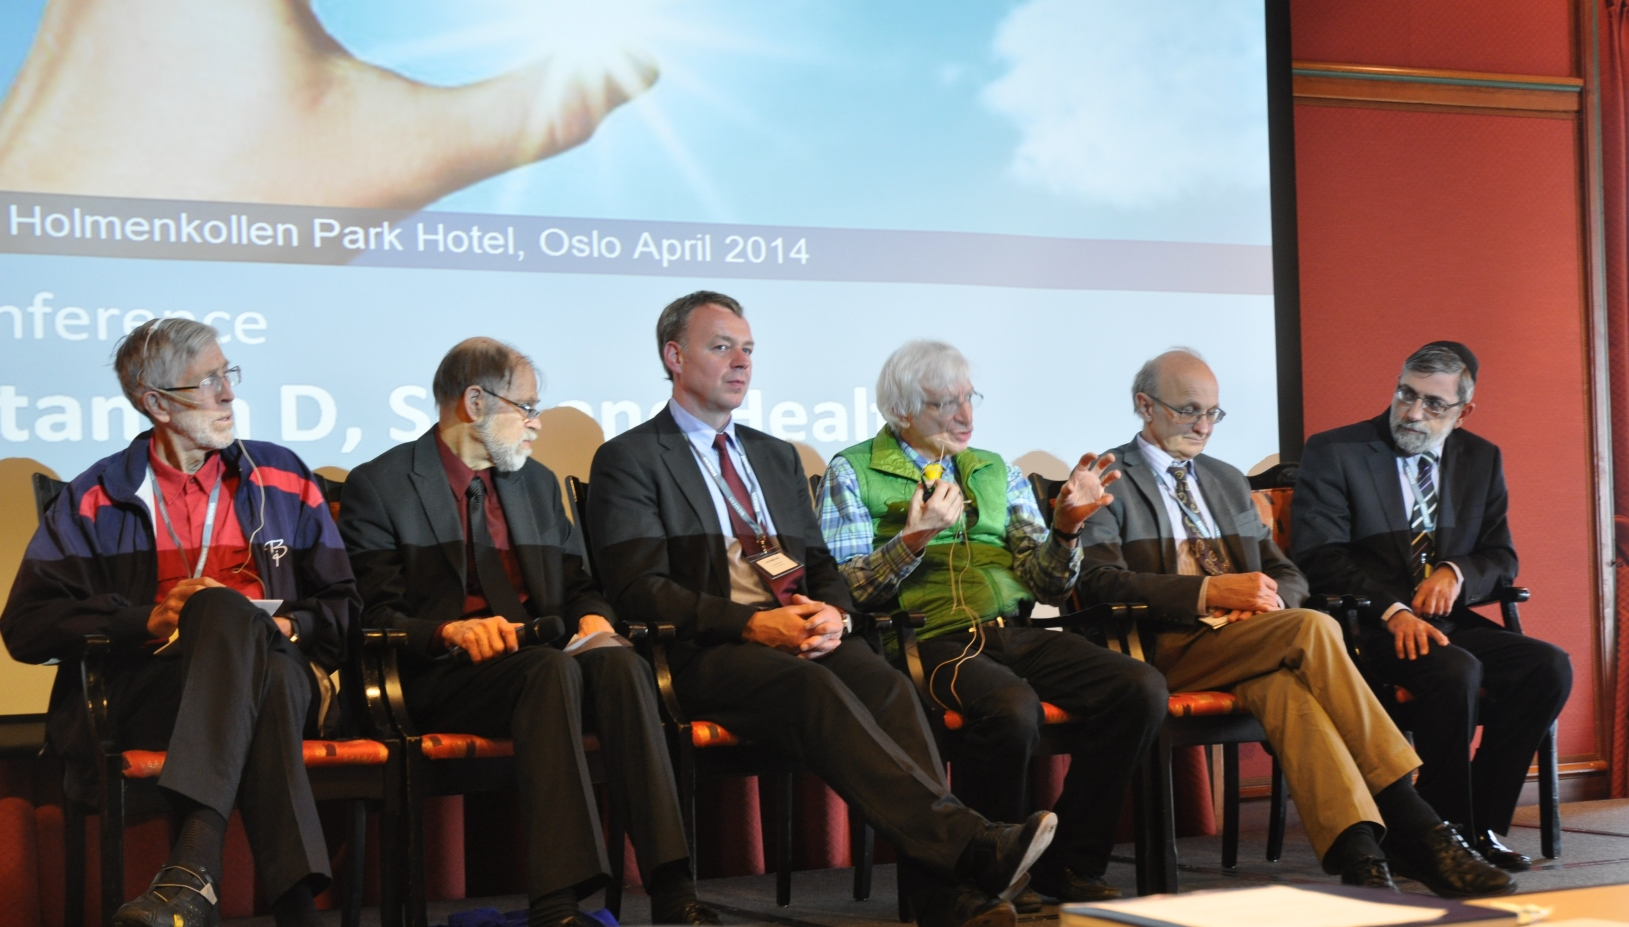 The panel of experts at last year's conference on Vitamin D in Oslo included, from left, Prof. Johan Moan (Norway), Prof. Reinhold Vieth (Canada), Prof. Jorg Reichrath (Germany), Prof. Michael F. Holick (USA), Prof. William B. Grant (USA) and Dr. Marco Harari (Israel). Photo: courtesy of DMZ Medical Center